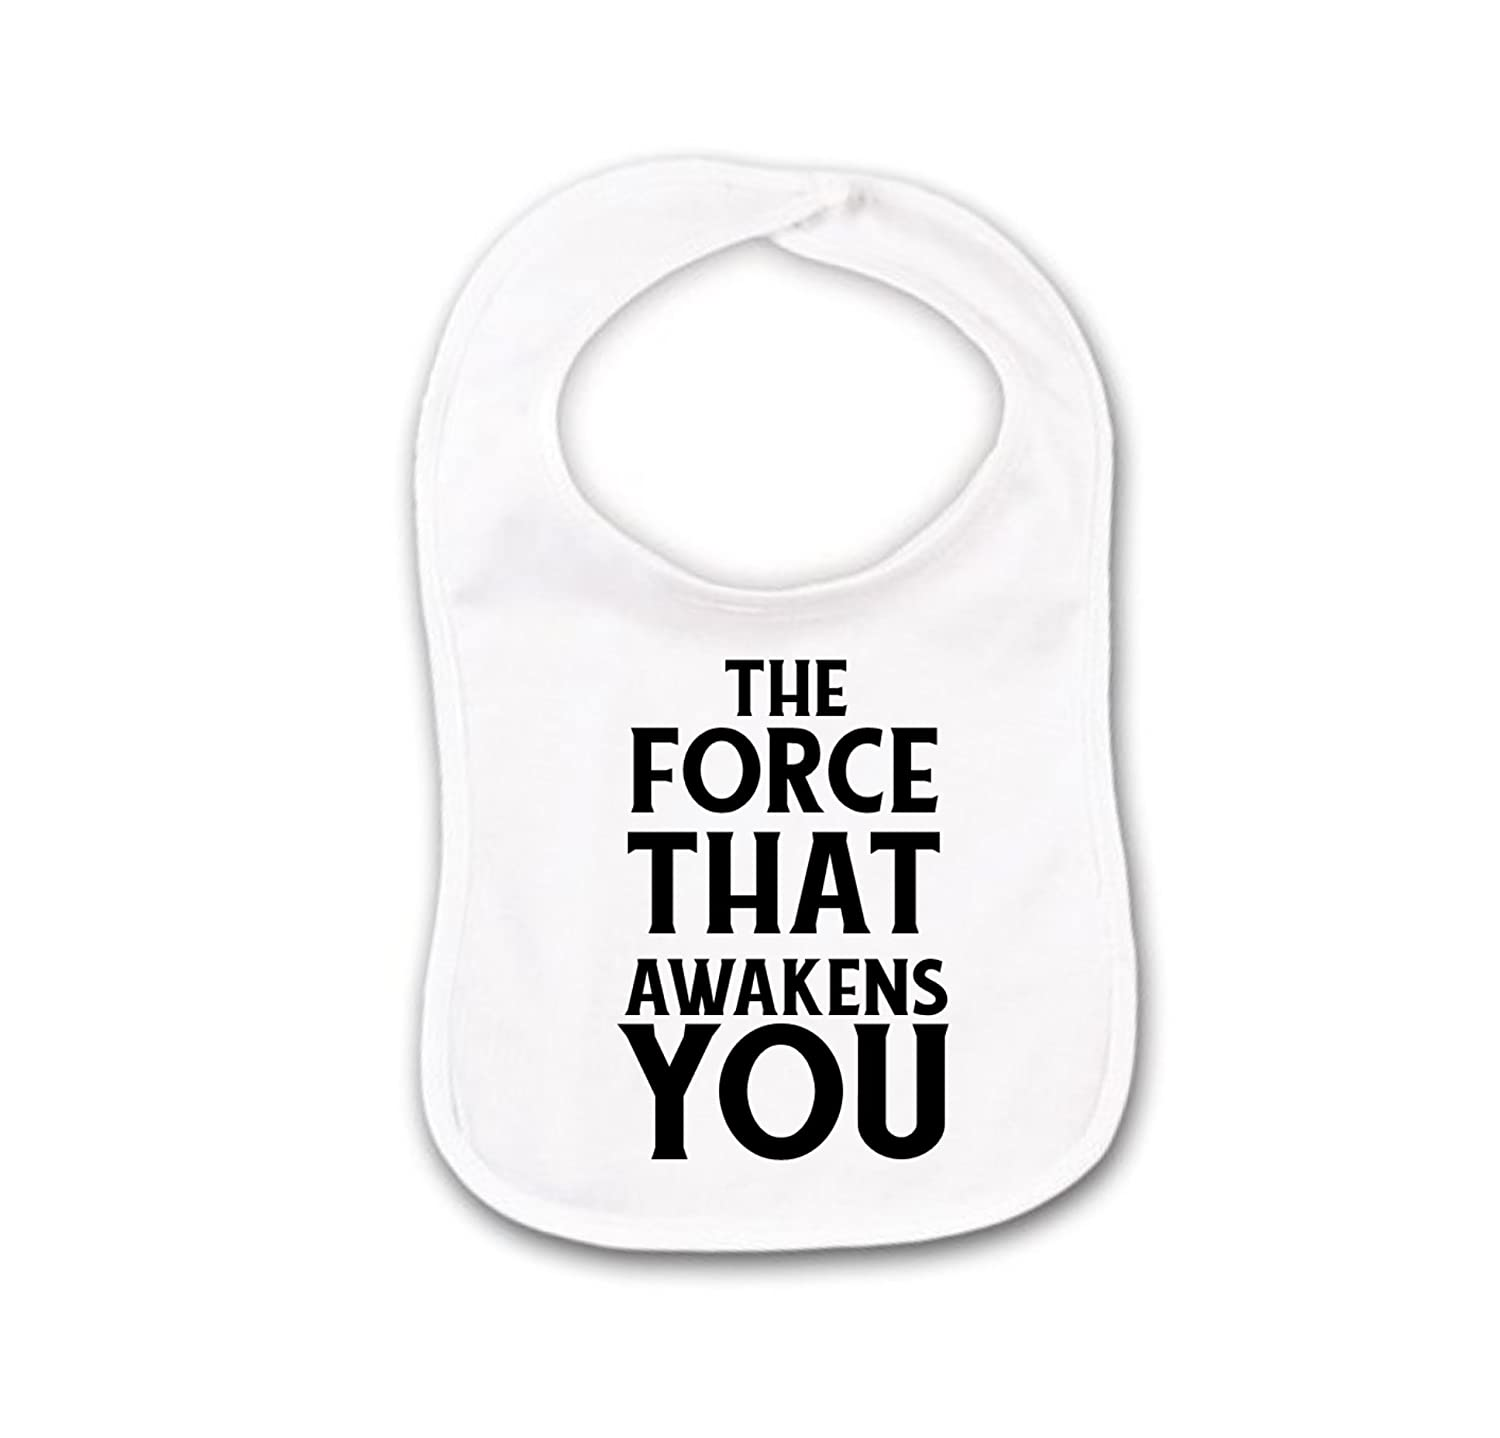 The Force That Awakens You Funny Baby Bib or Burp Cloth With Sayings